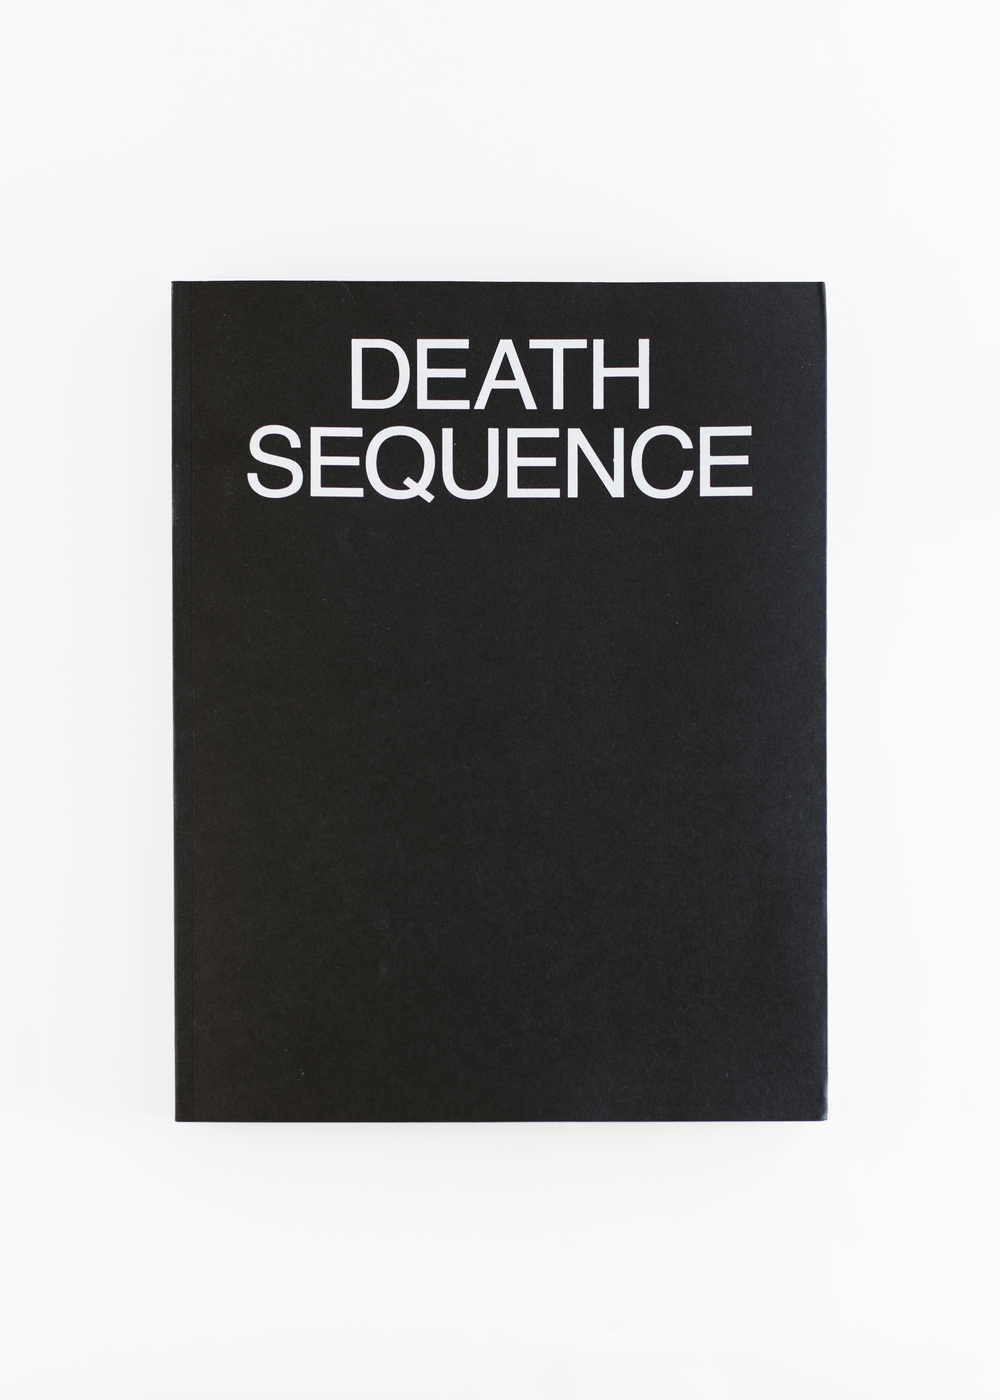 "Sam Falls - Death Sequence</br>368 pages 22.5 x 30.5 cm</br>Karma 2014</br>€40 <a href=""https://www.paypal.com/cgi-bin/webscr?cmd=_s-xclick&hosted_button_id=GPTNVXLL392ME"">Add to Cart</a>"